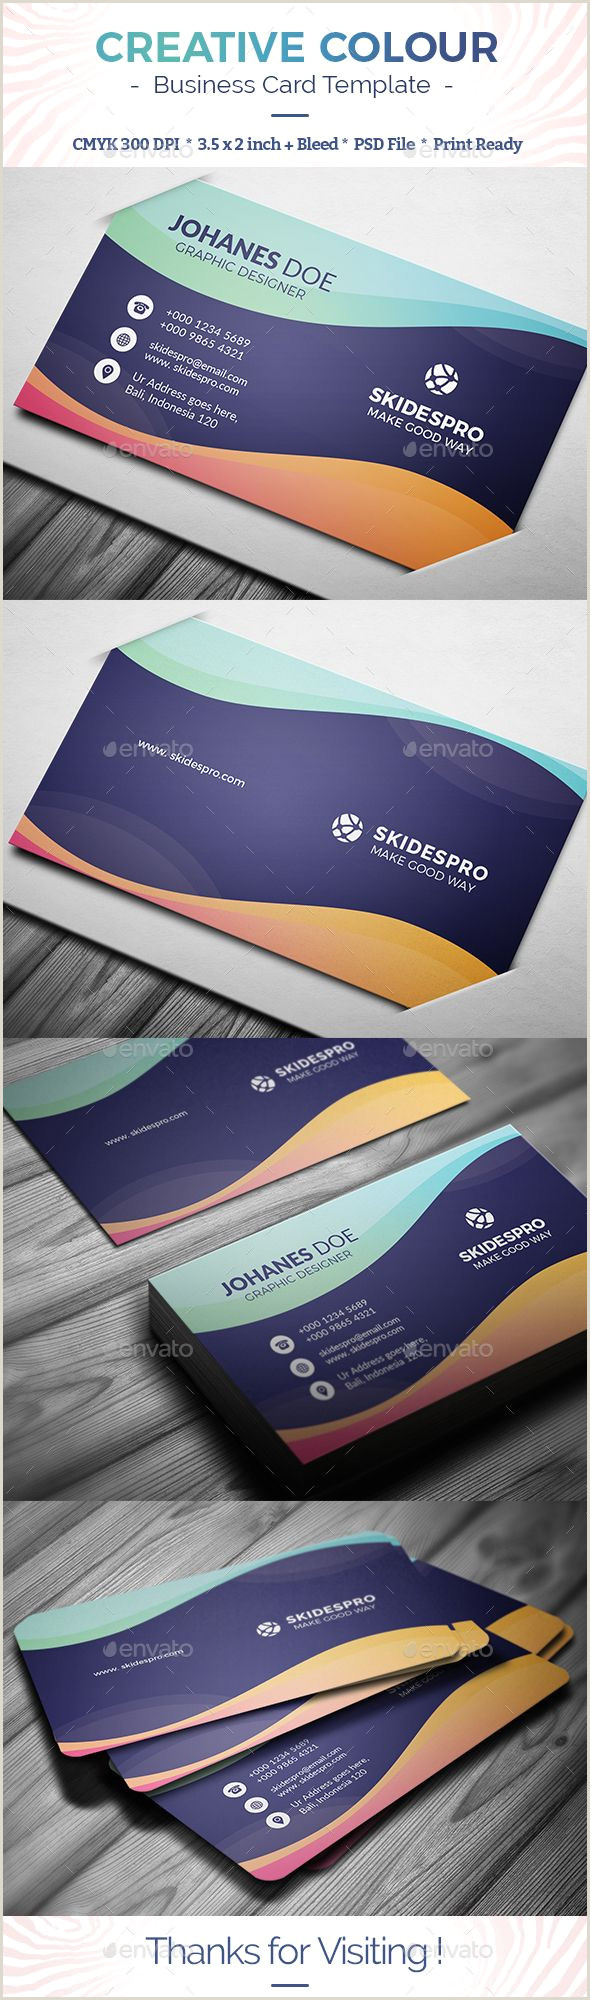 How To Make Bussiness Cards Creative Colour Business Cards Print Templates